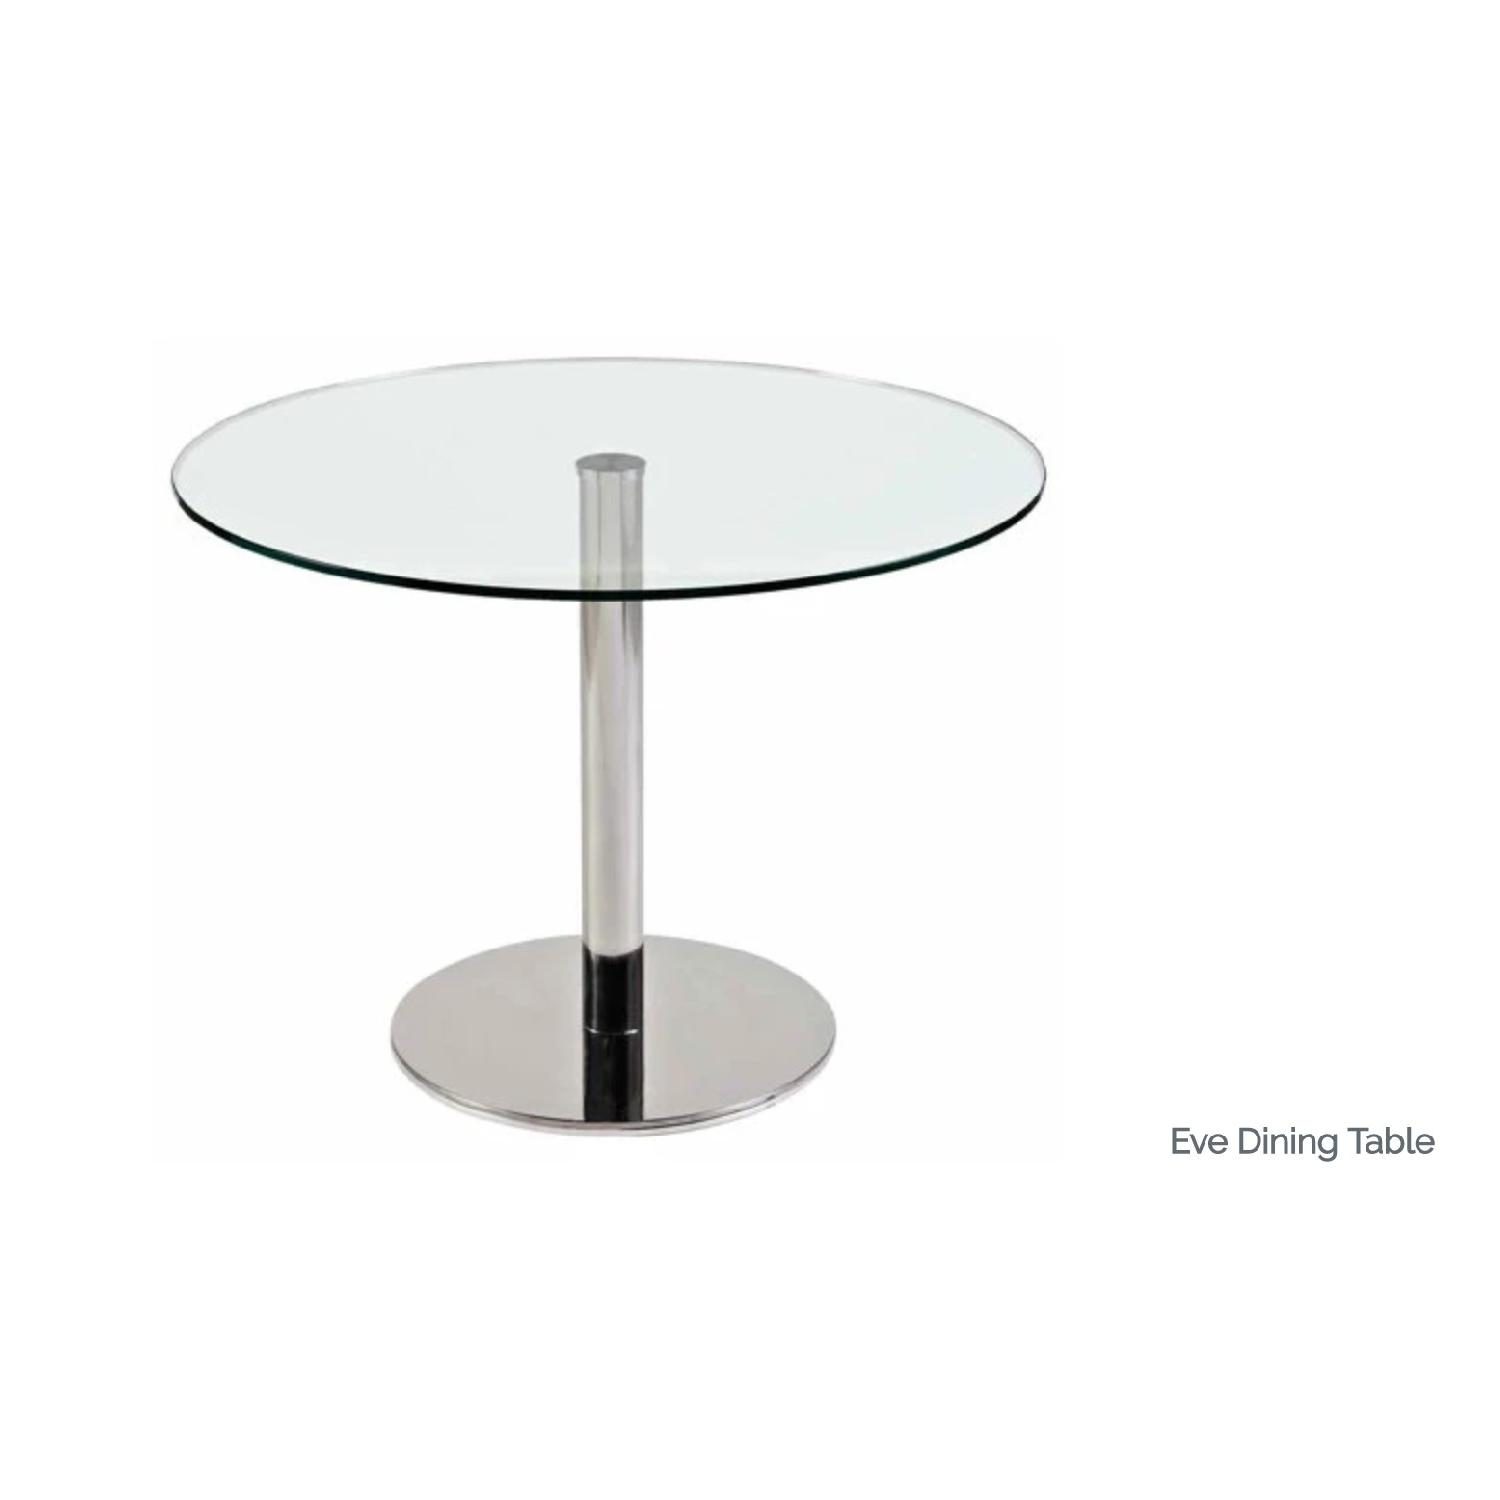 Modani Eve Dining Table w/ 2 Chairs - image-4